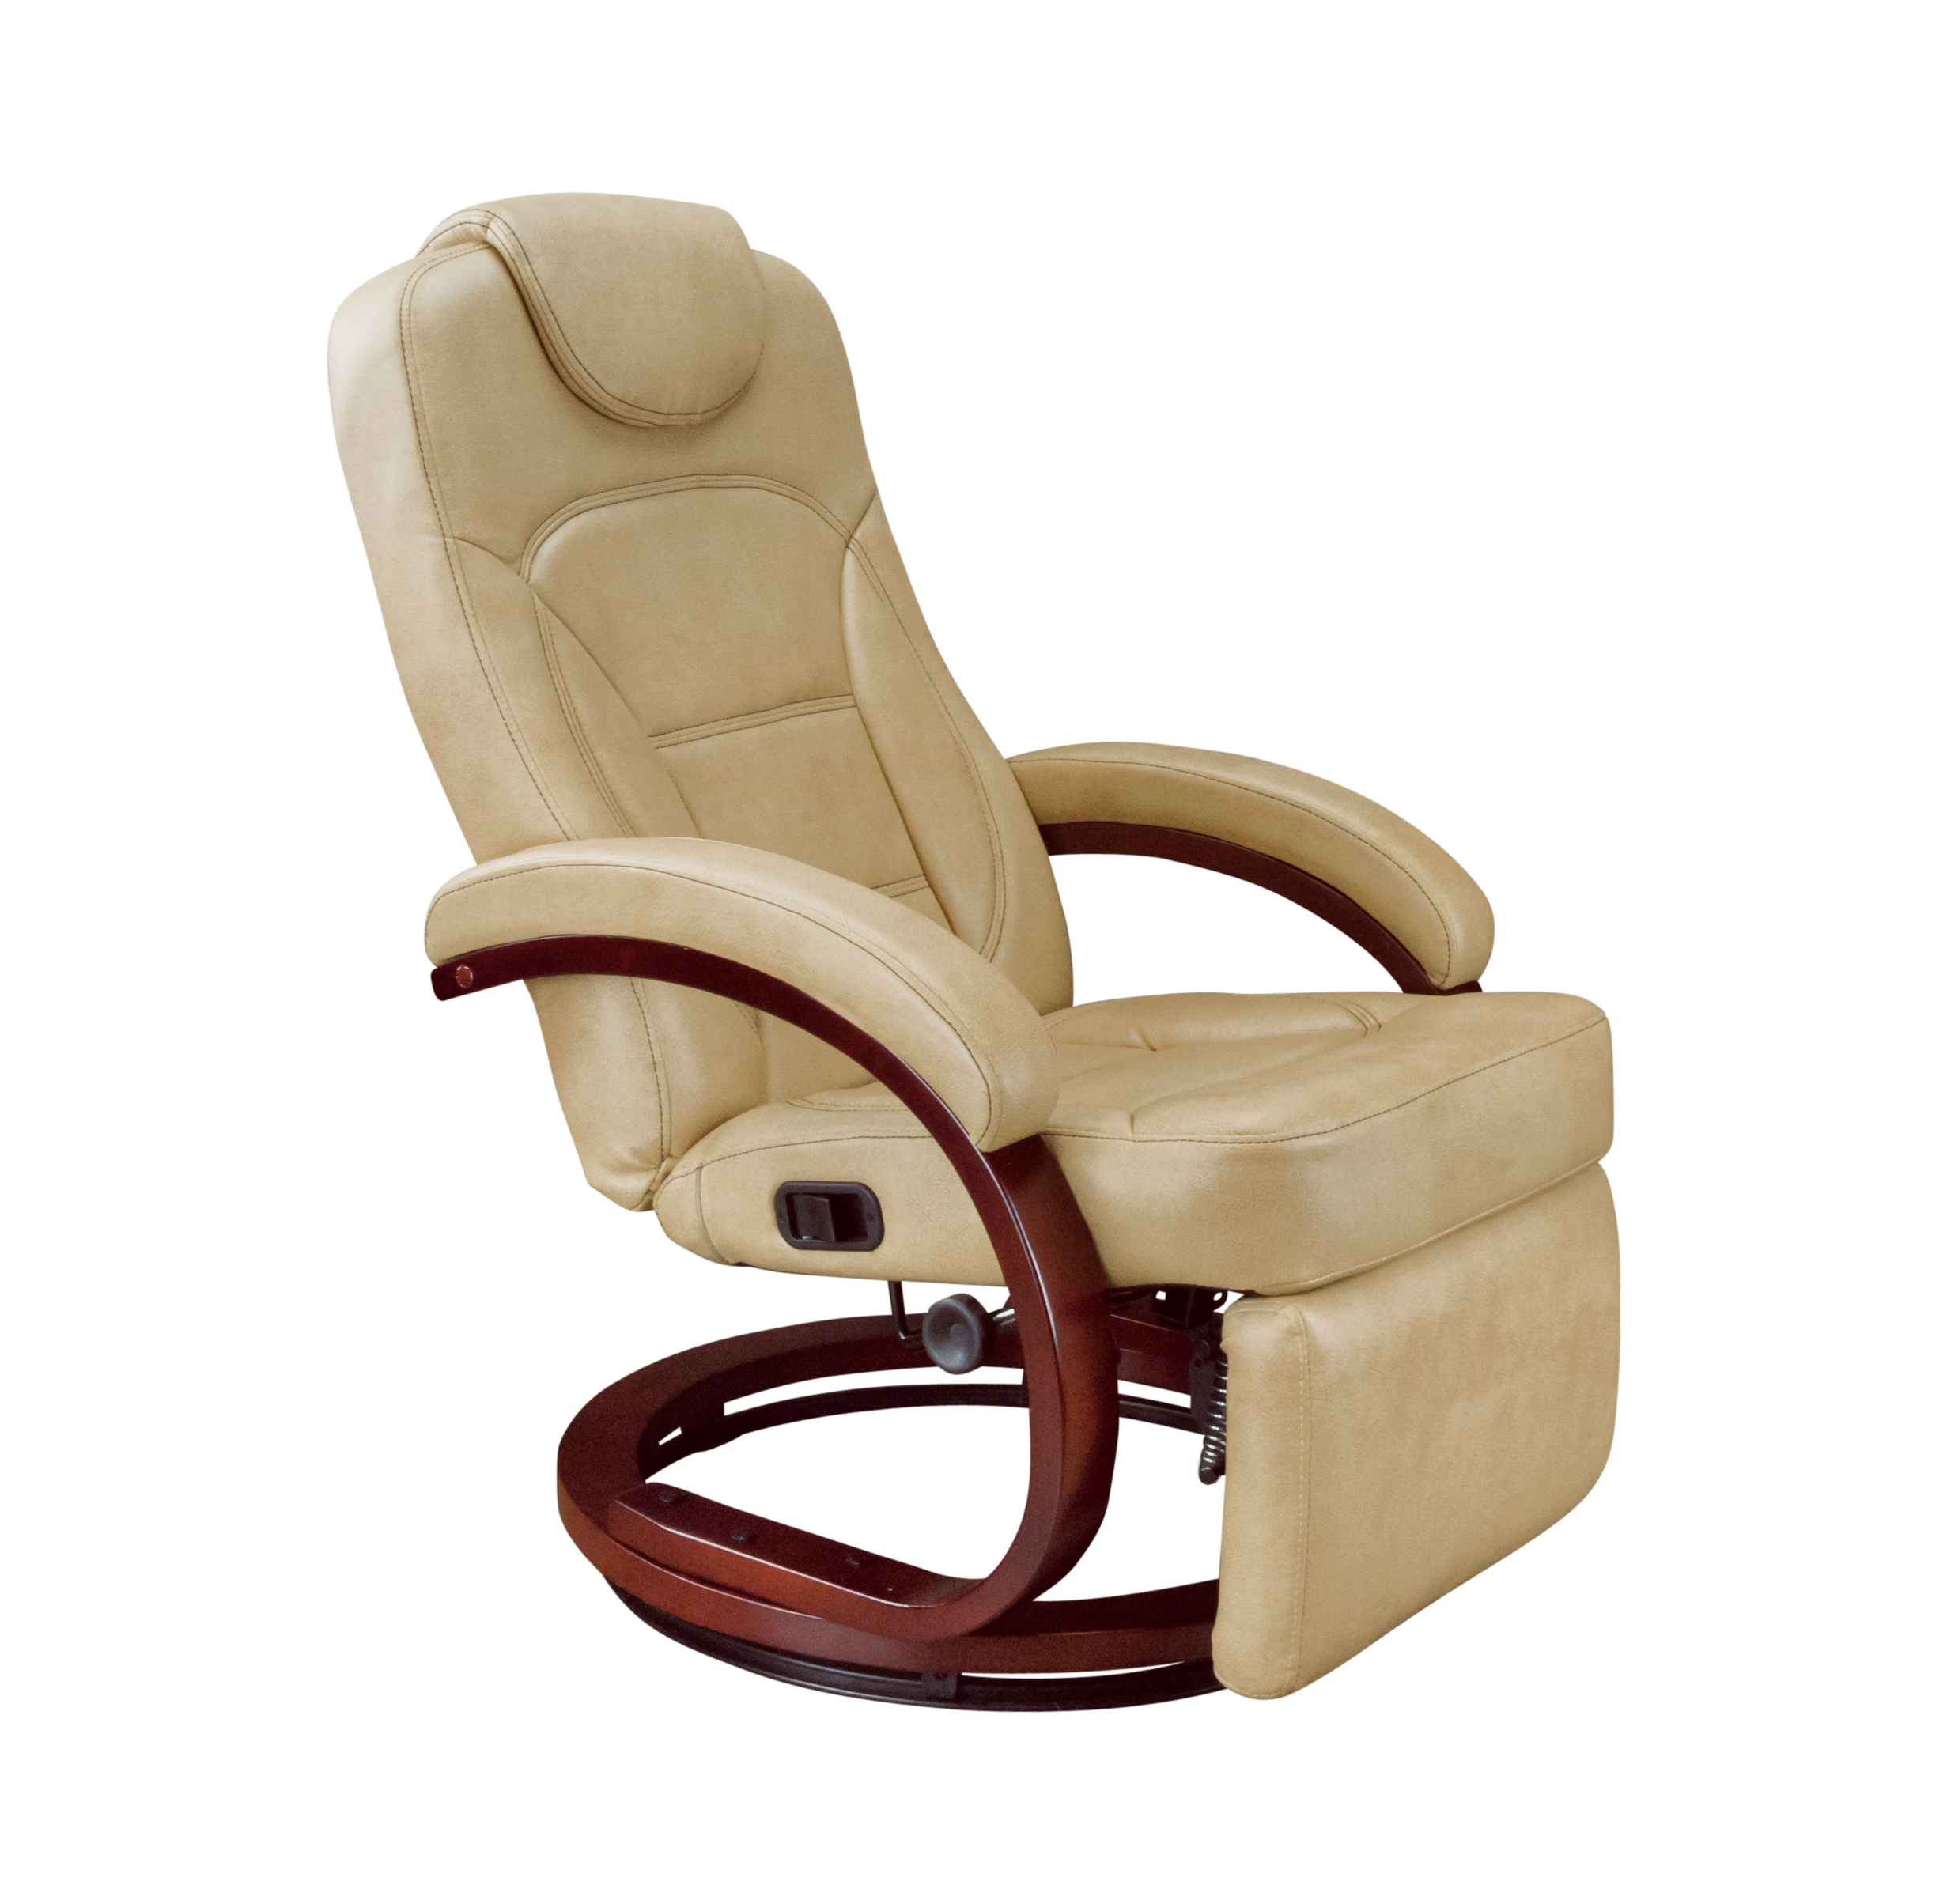 Euro Recliner Chair With Footrest Alternate Latte VR Expert